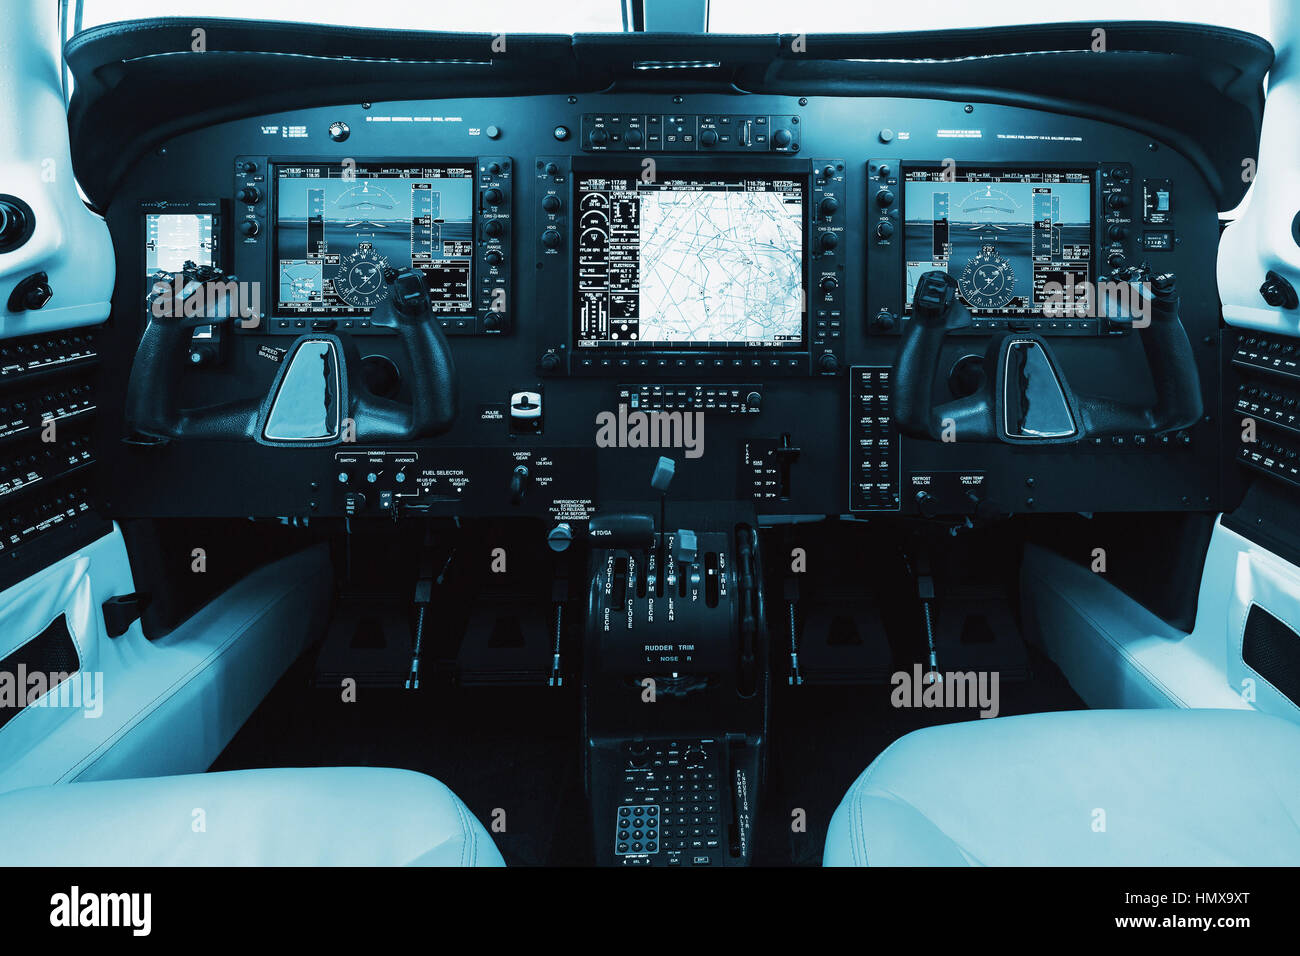 Dashboard single piston aircraft with glass cockpit. Small private aircraft, interior and dashboard. m350 - Stock Image